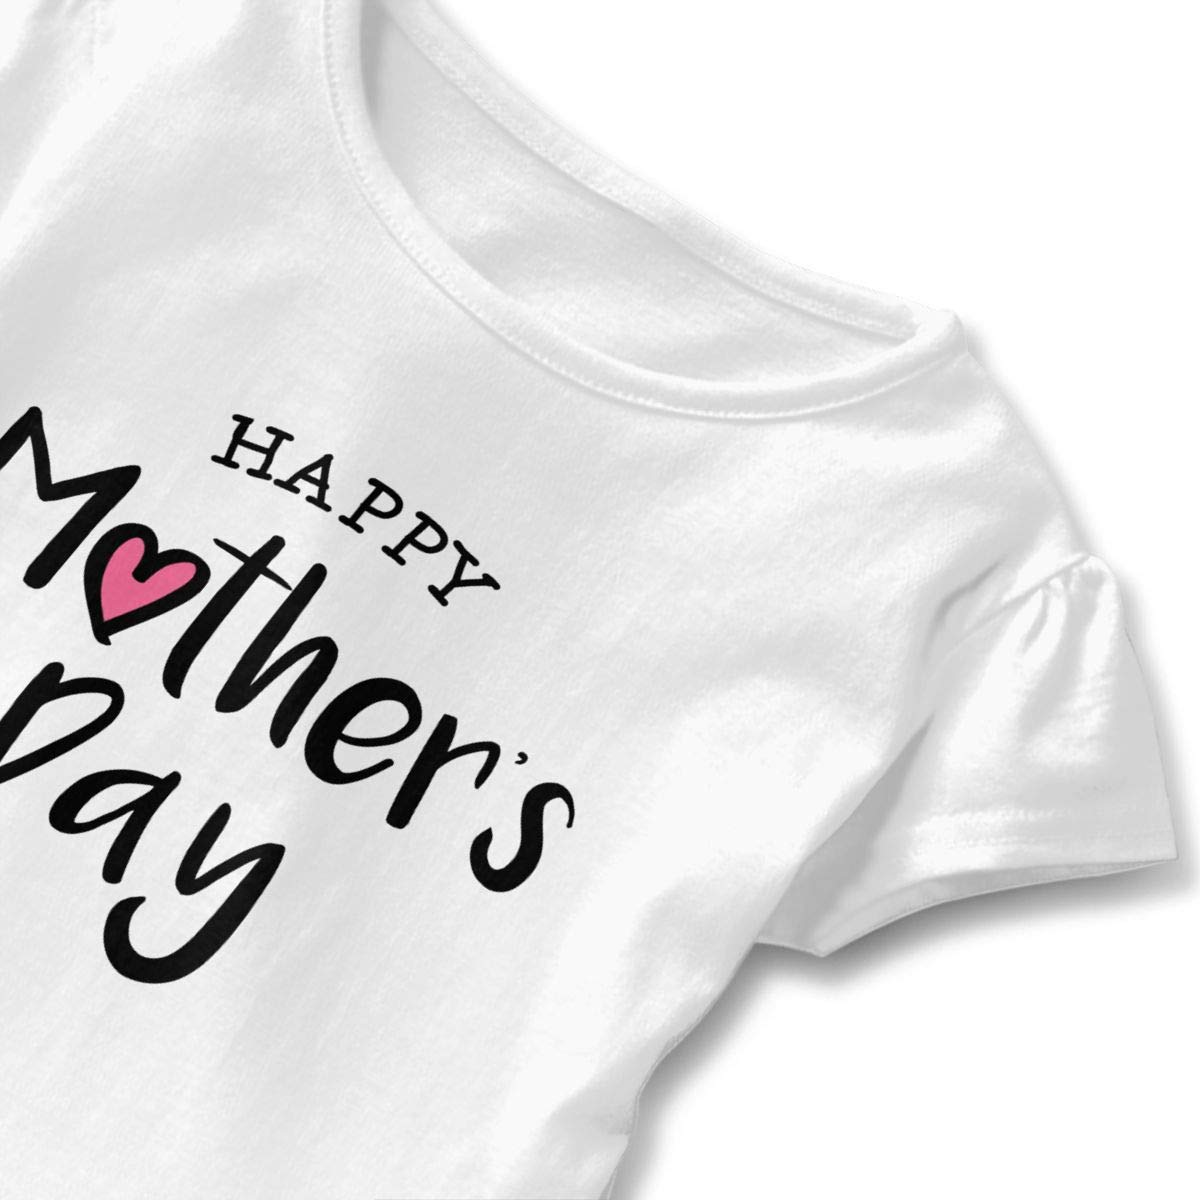 Happy Mothers Day Shirt Fashion Baby Girls Flounced T Shirts Graphic T-Shirt for 2-6T Baby Girls